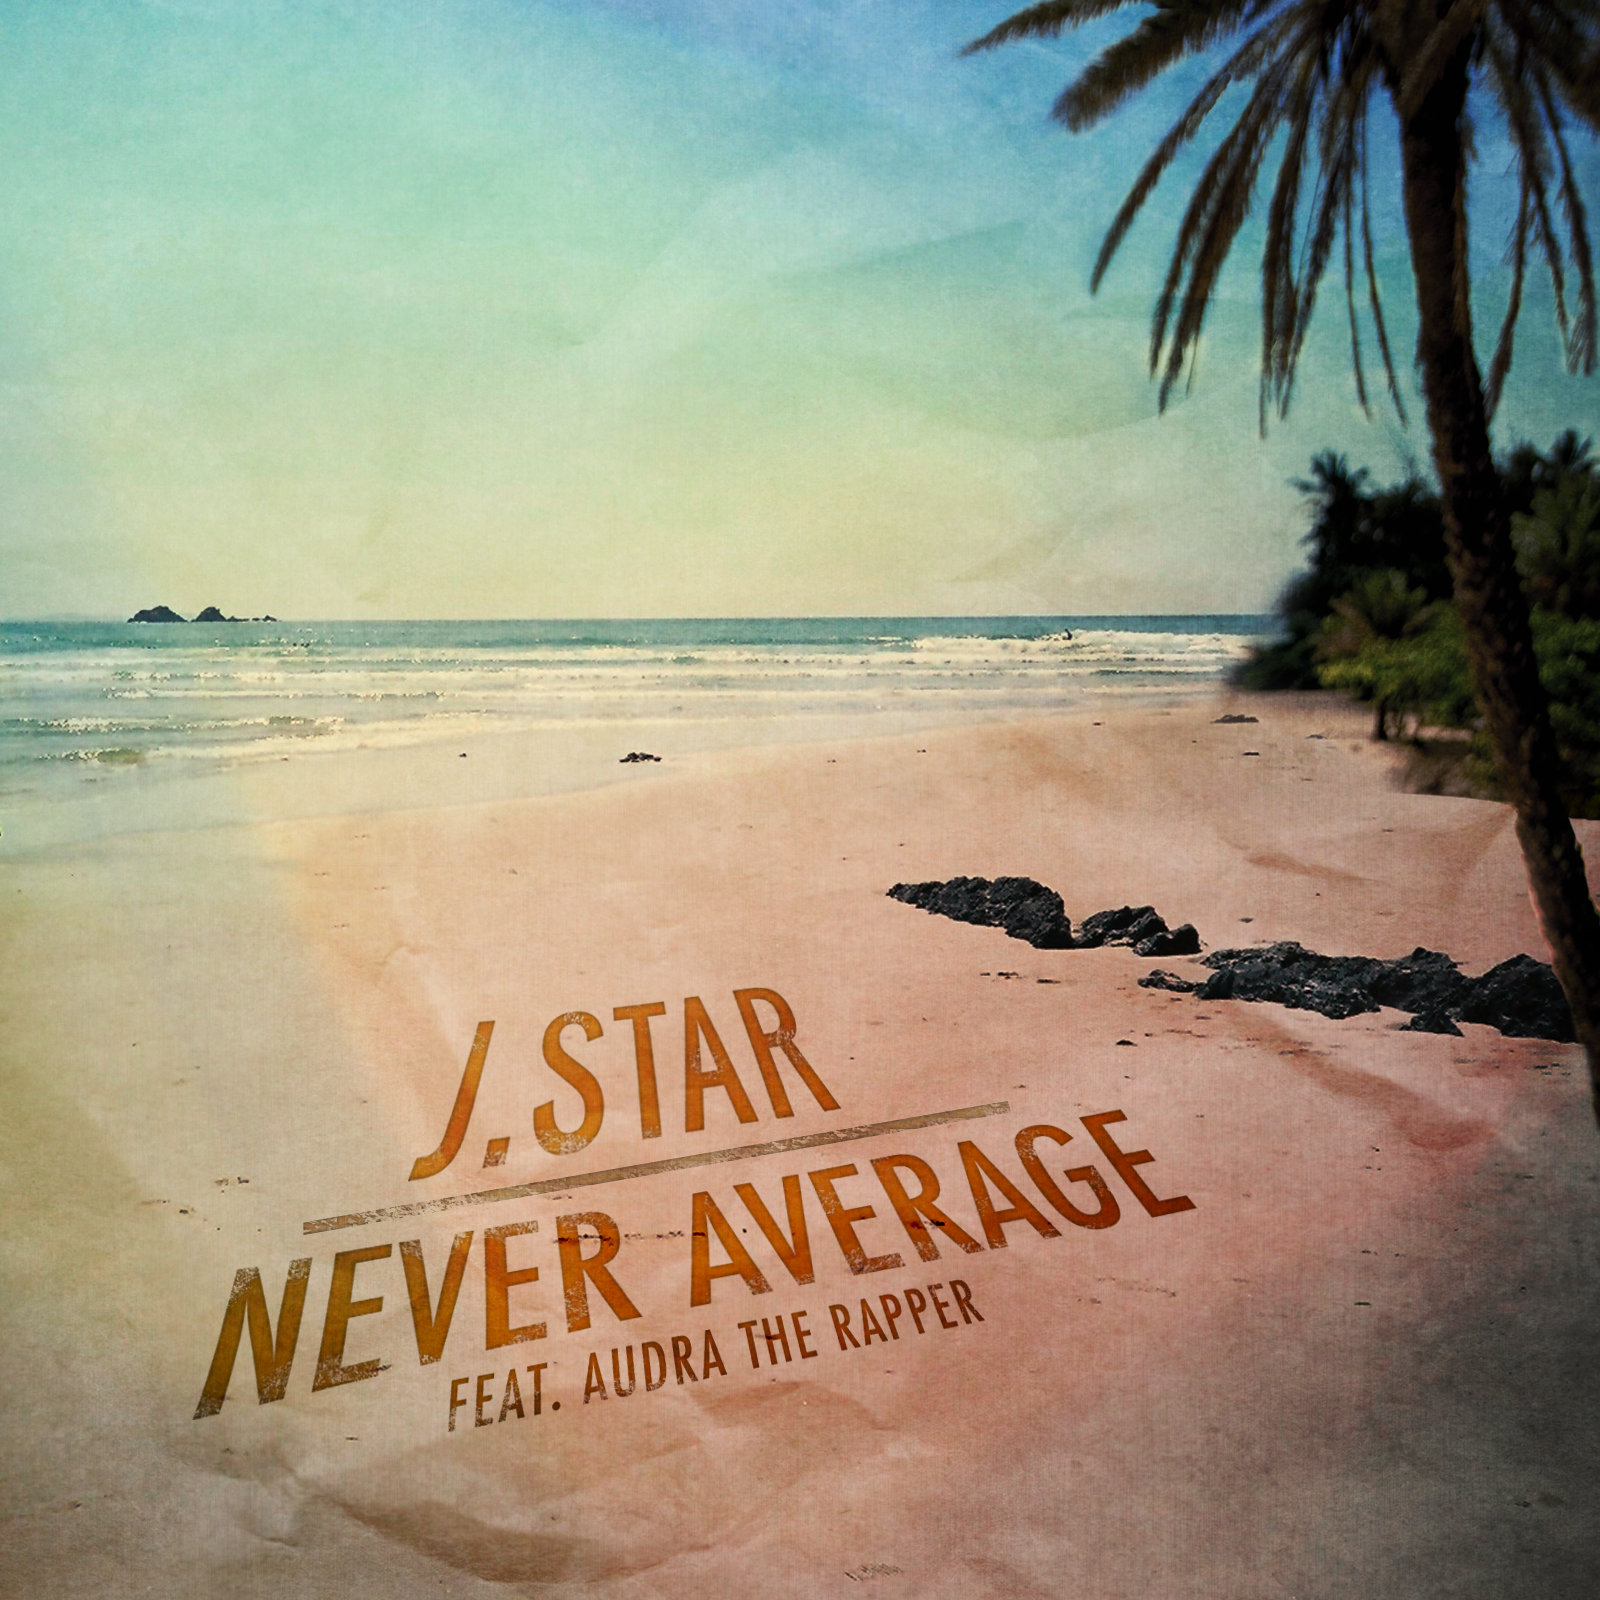 jstar-neveraverage-cover